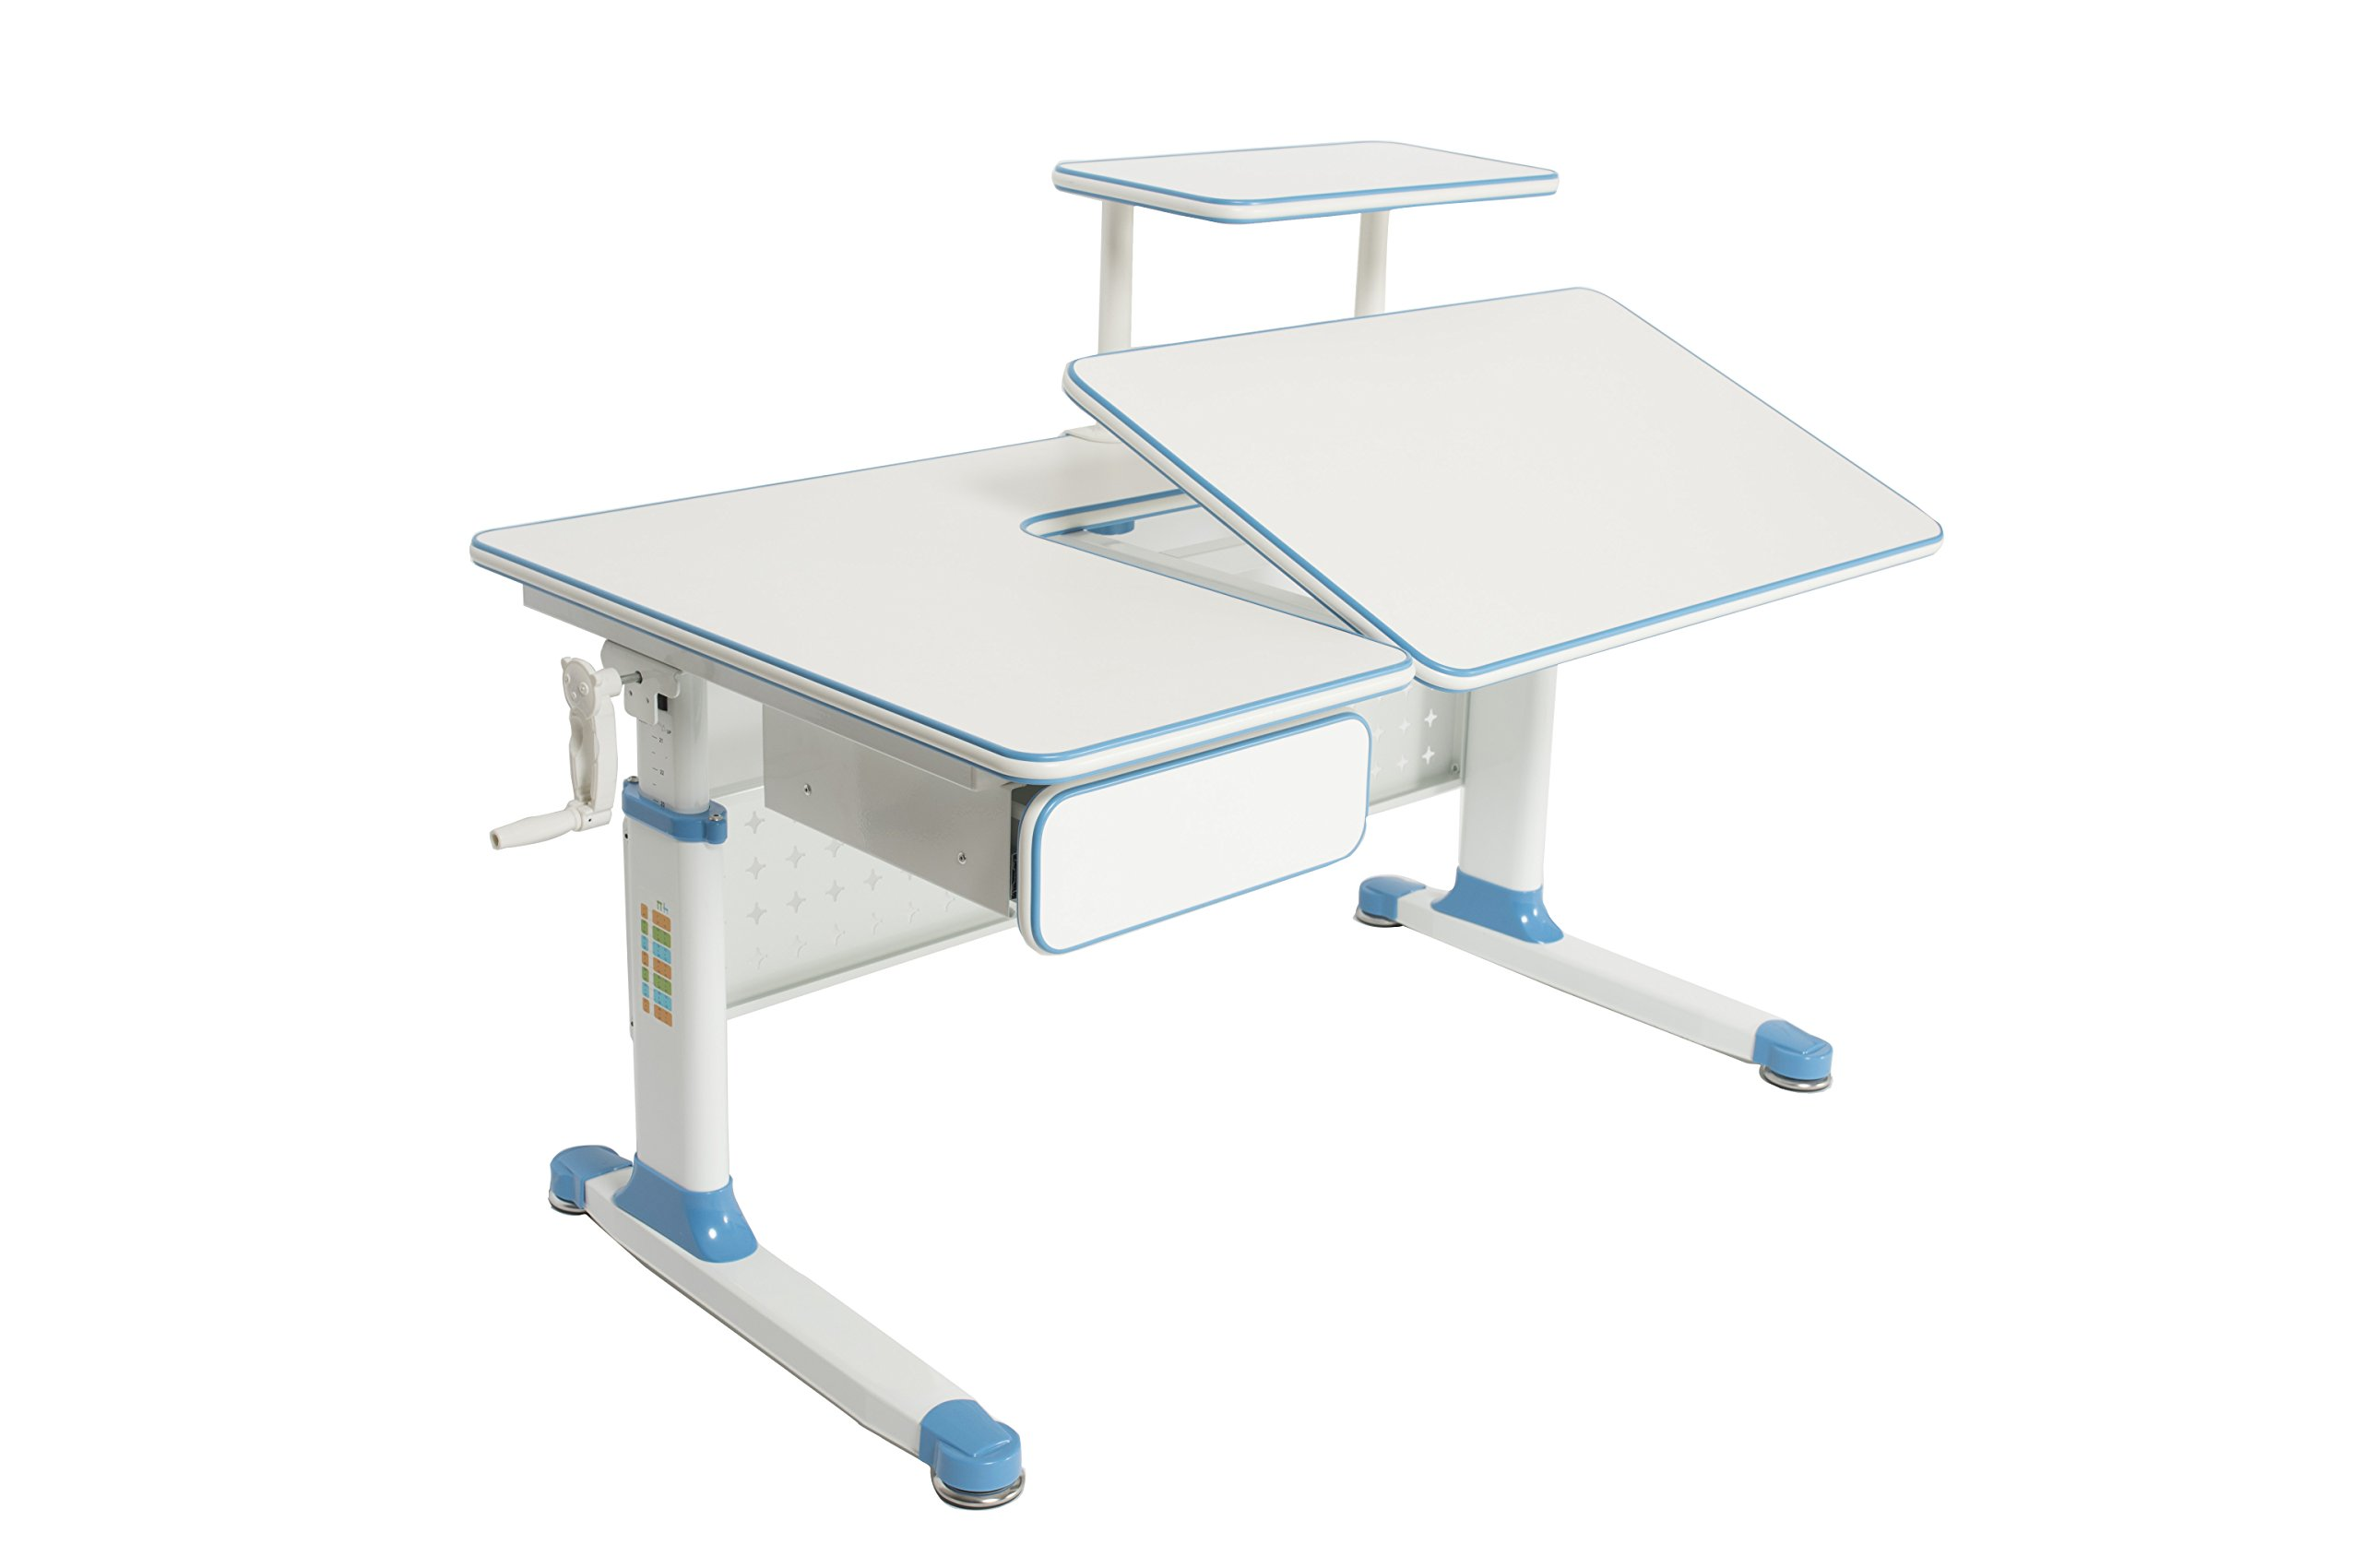 ApexDesk Little Soleil Dx 43'' Children's Height Adjustable Study Desk W/ Integrated Shelf & Drawer (Blue), Denim Blue